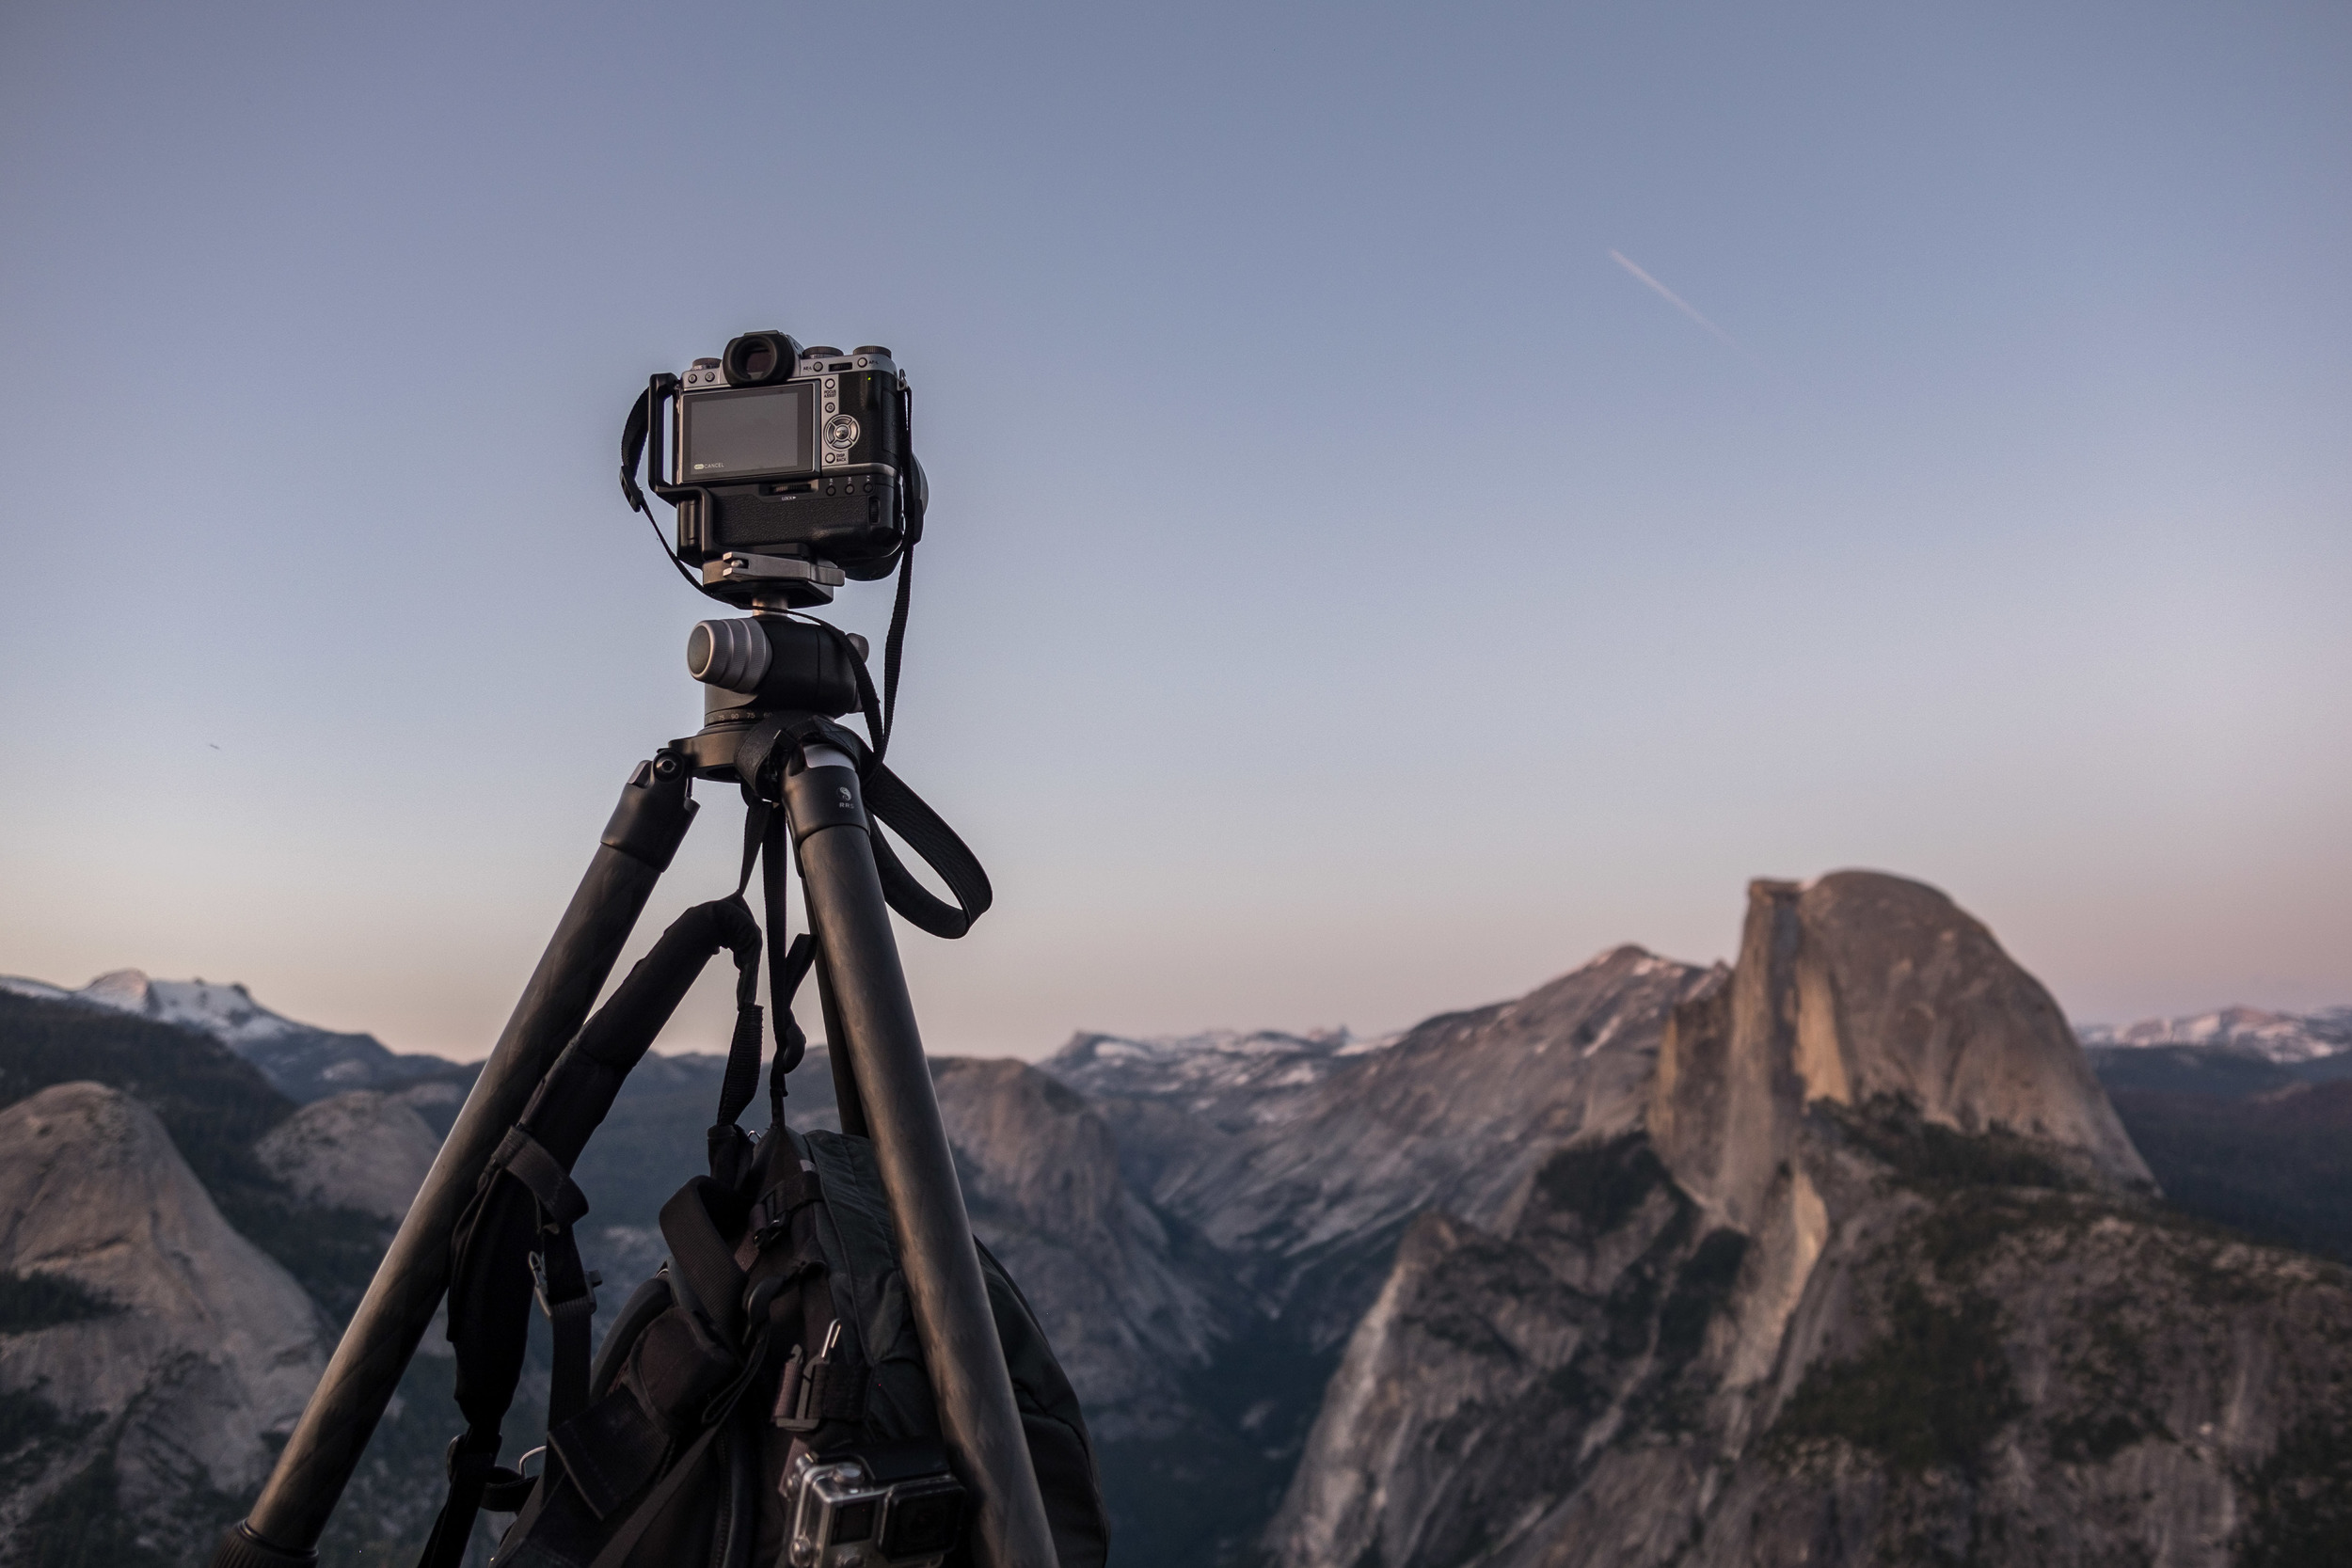 Shooting Yosemite National Park's Glacier Point at sunset with the XT-1.